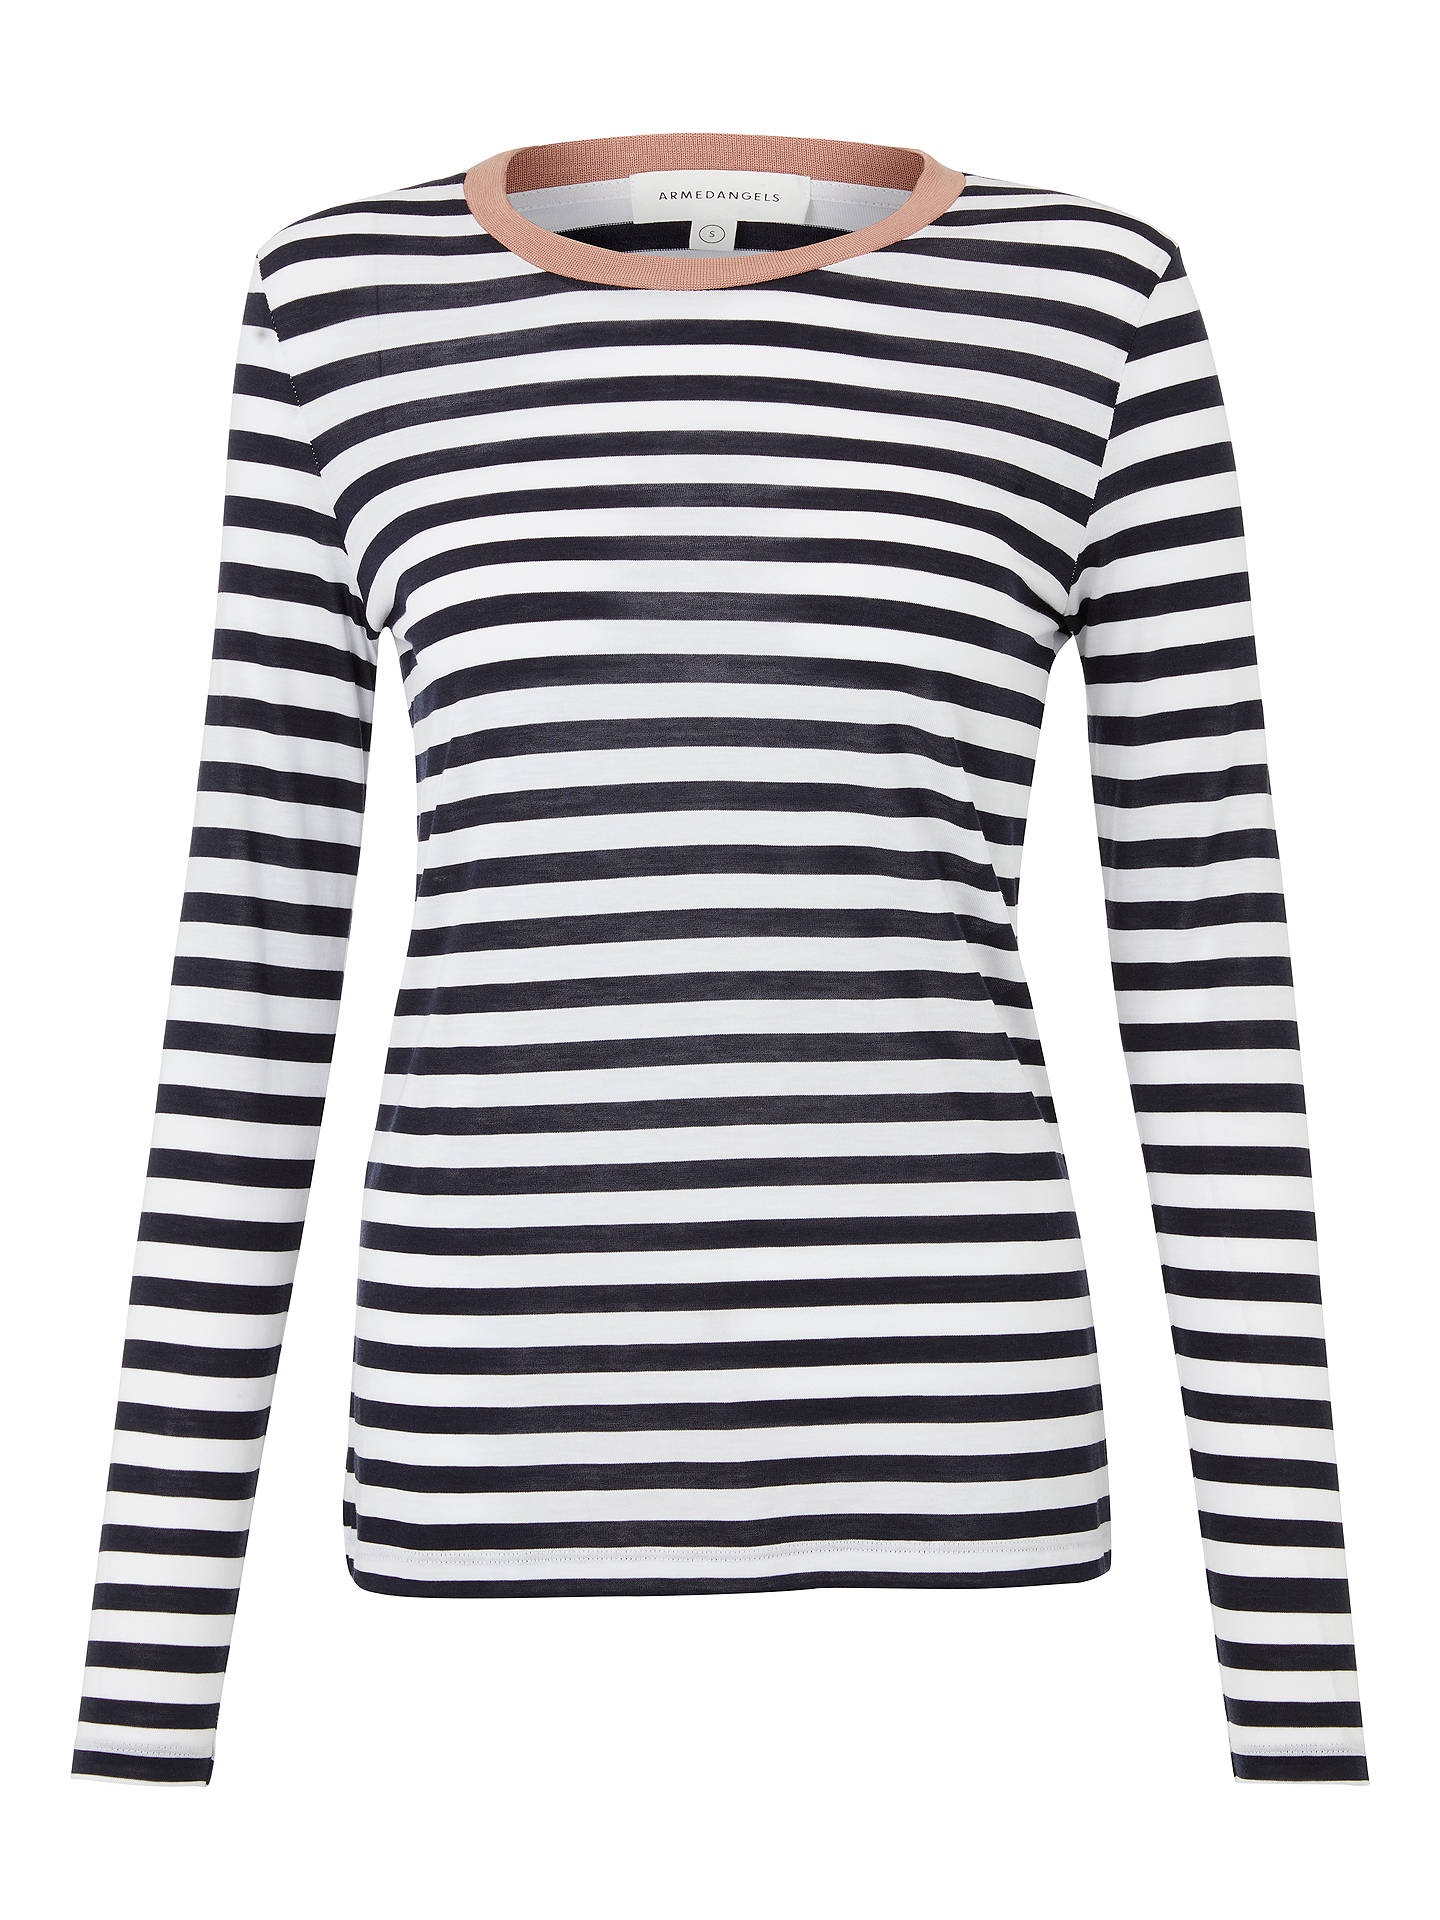 BuyARMEDANGELS Lara Bold Stripes Top, Navy/White, XS Online at johnlewis.com